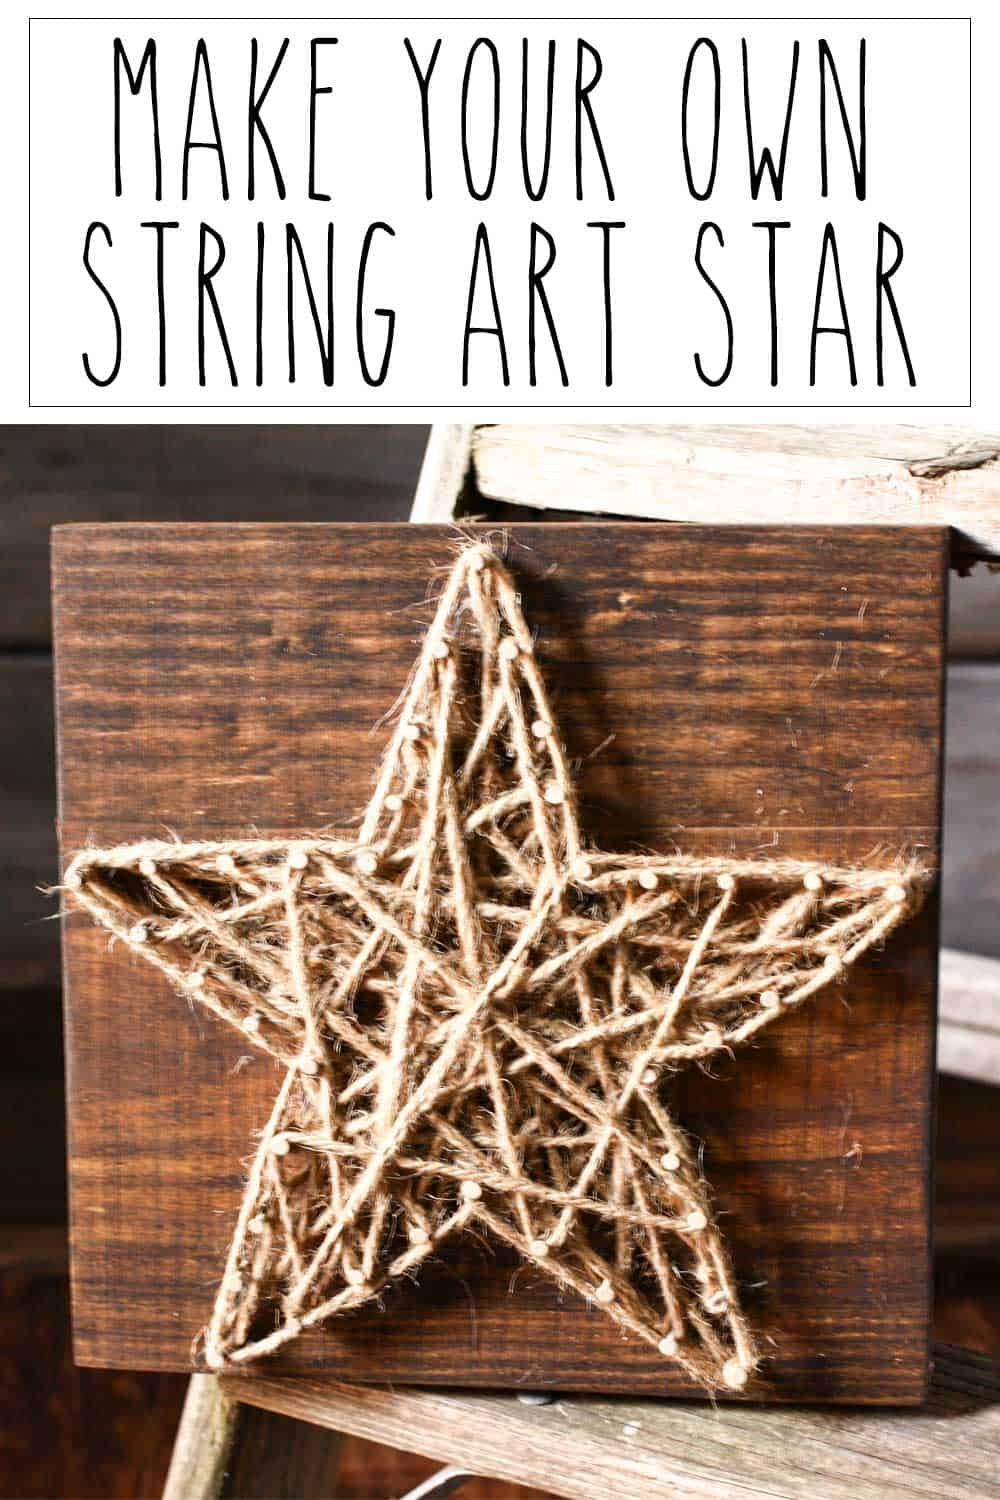 diy string art star. Black Bedroom Furniture Sets. Home Design Ideas